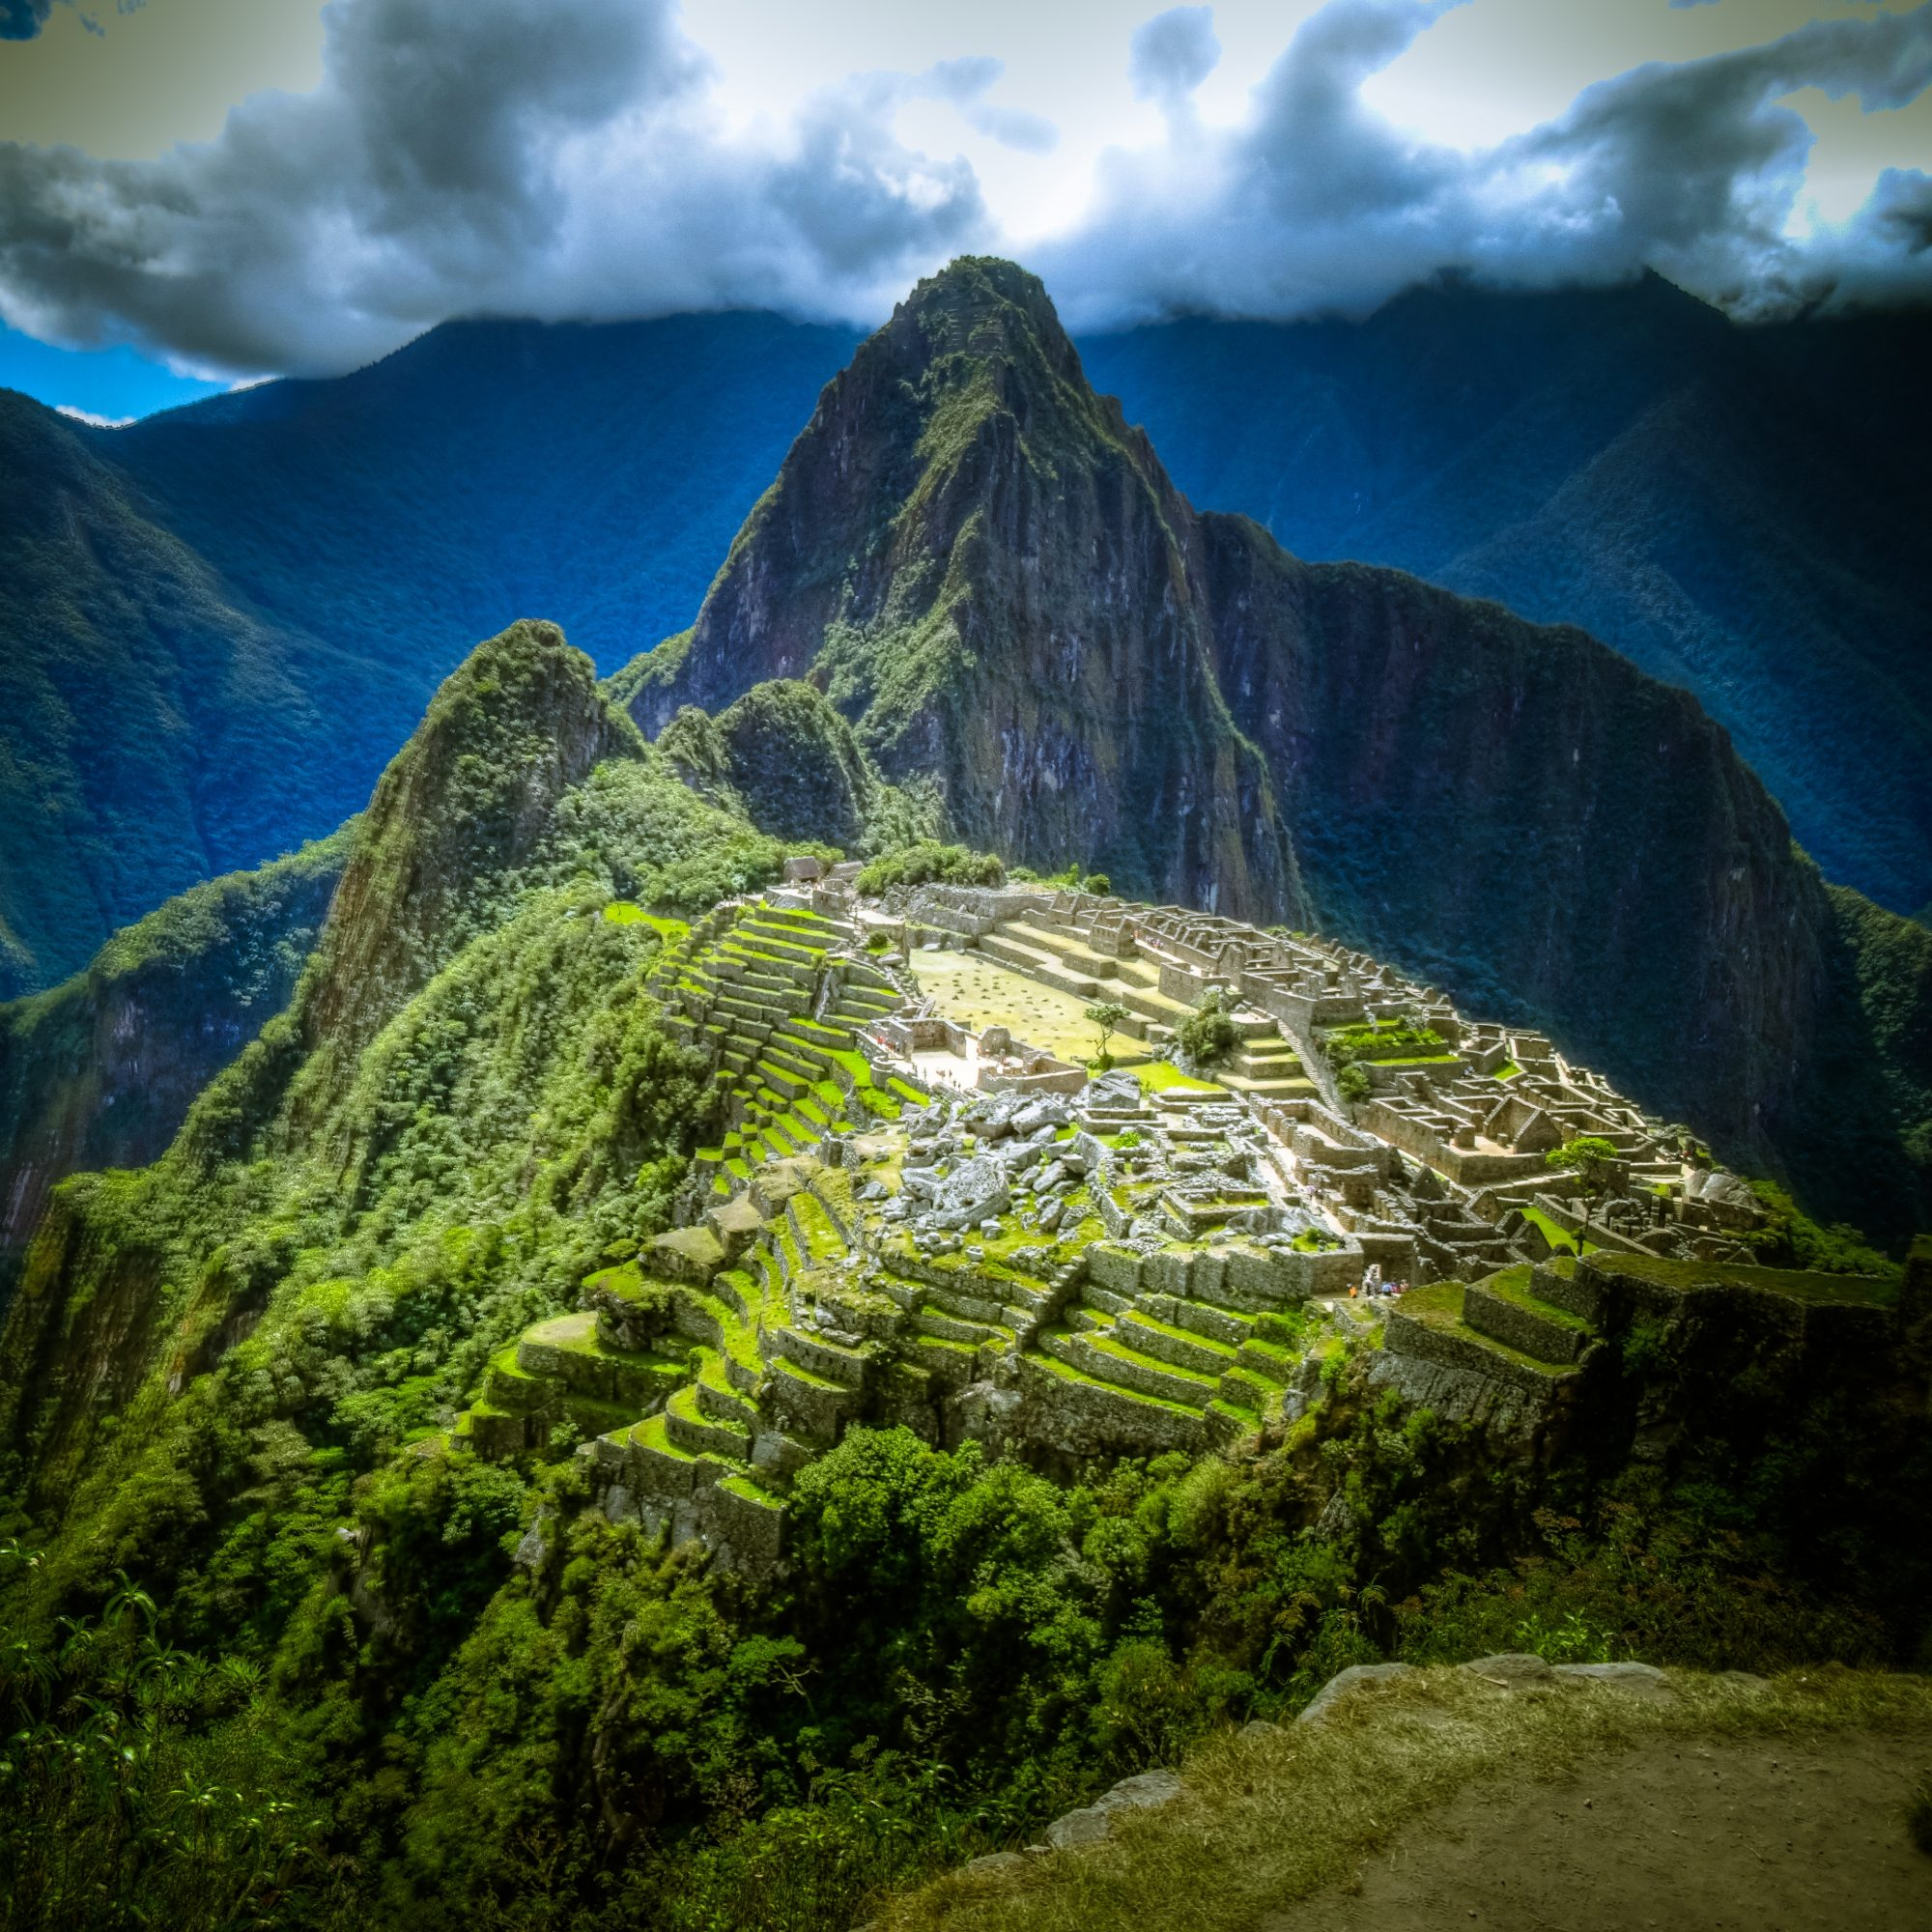 Aerial view of Machu Picchu, Peru and UNESCO World Heritage site on SelfishMe Travel LLC